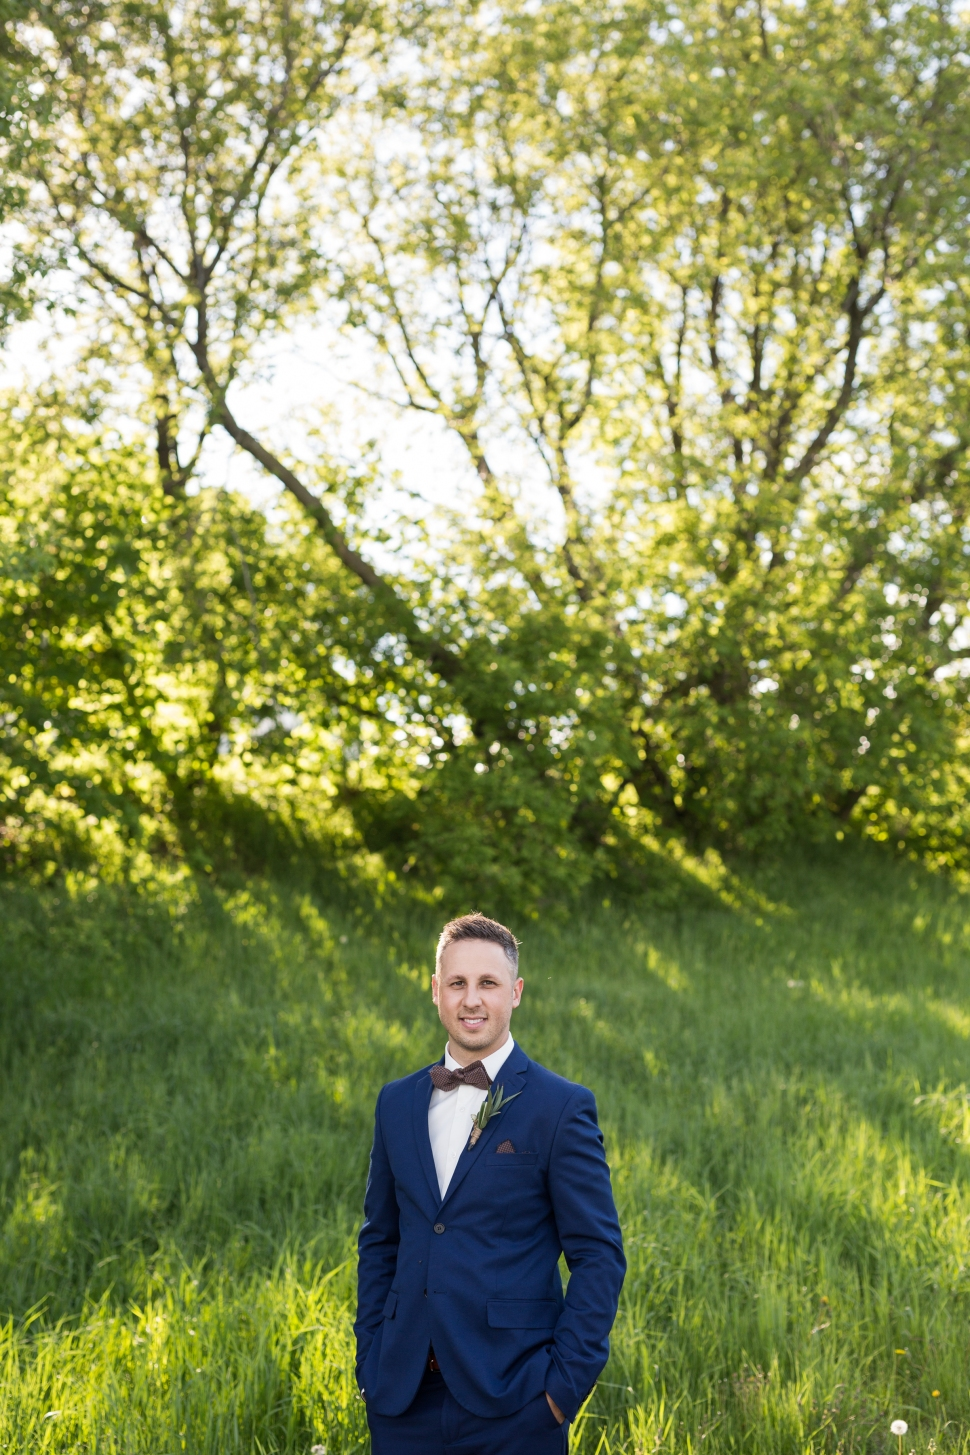 montreal_lifestyle_wedding_photographer_photography_orchard_winery_photographe_mariage_vignoble_rougemont-47